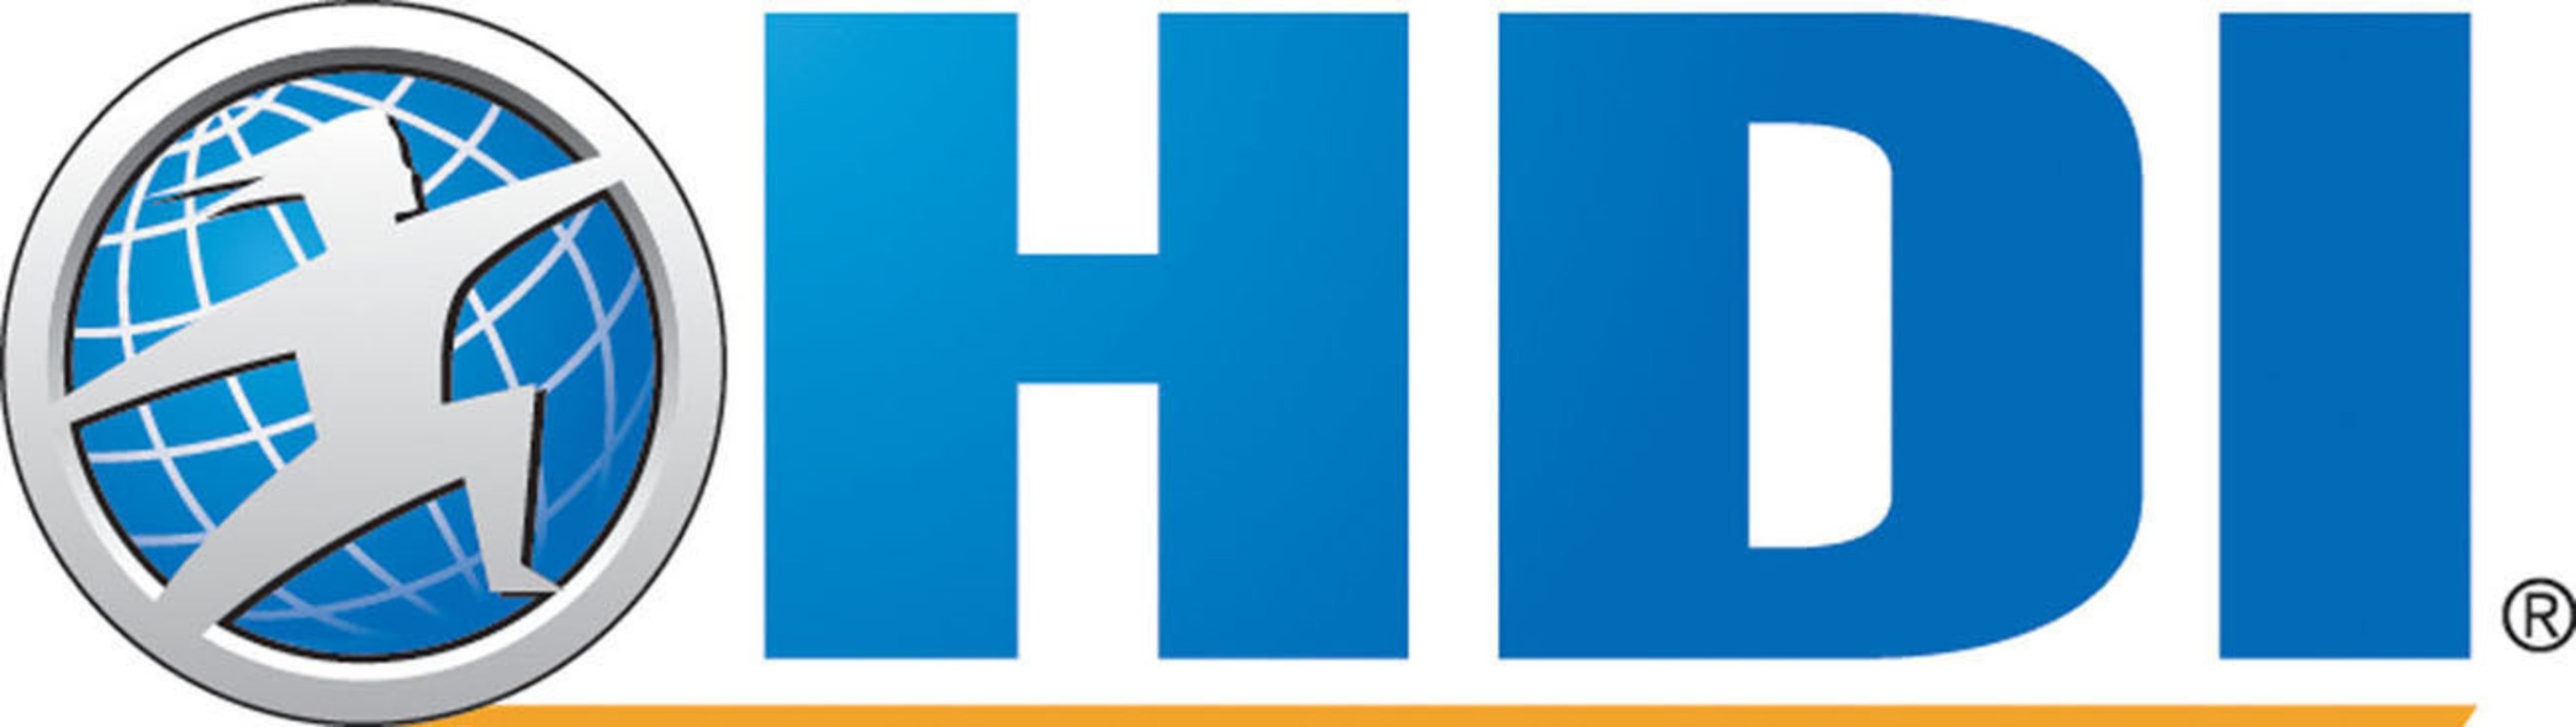 Six Finalists Selected for 2015 HDI Service Management Awards